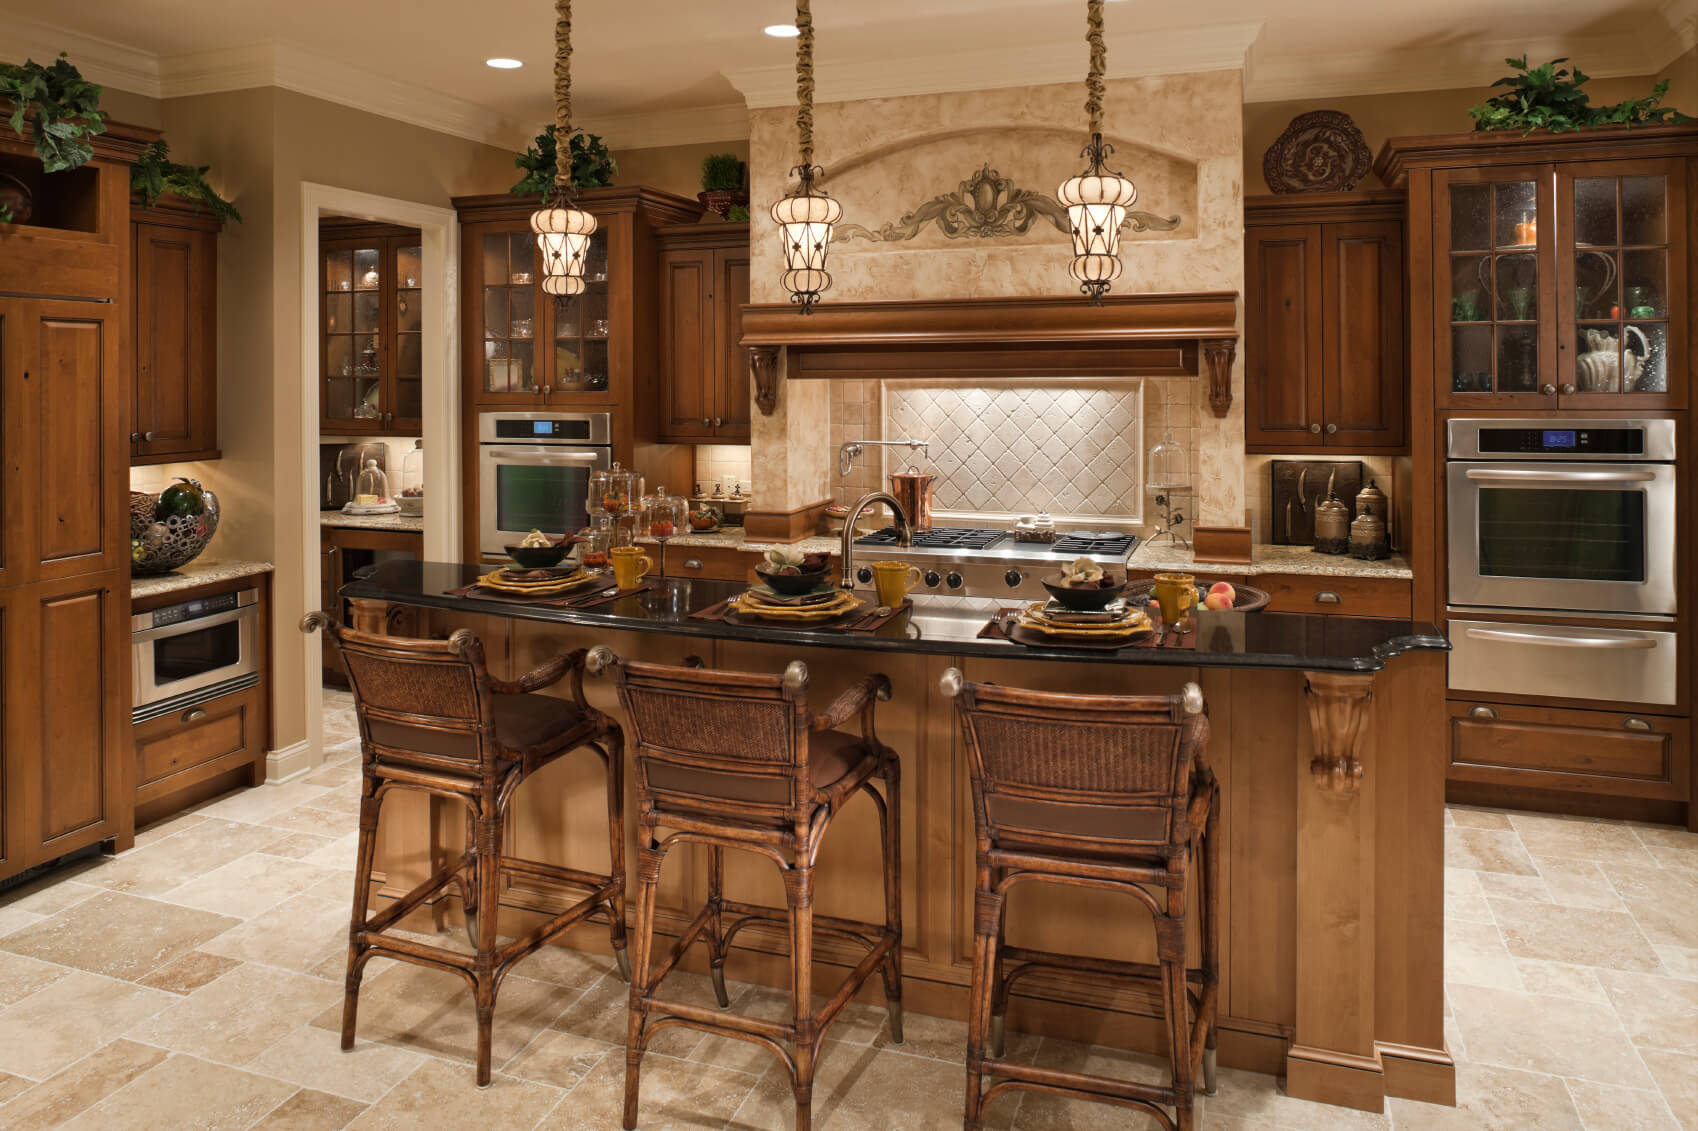 48 Luxury Dream Kitchen Designs Worth Every Penny s